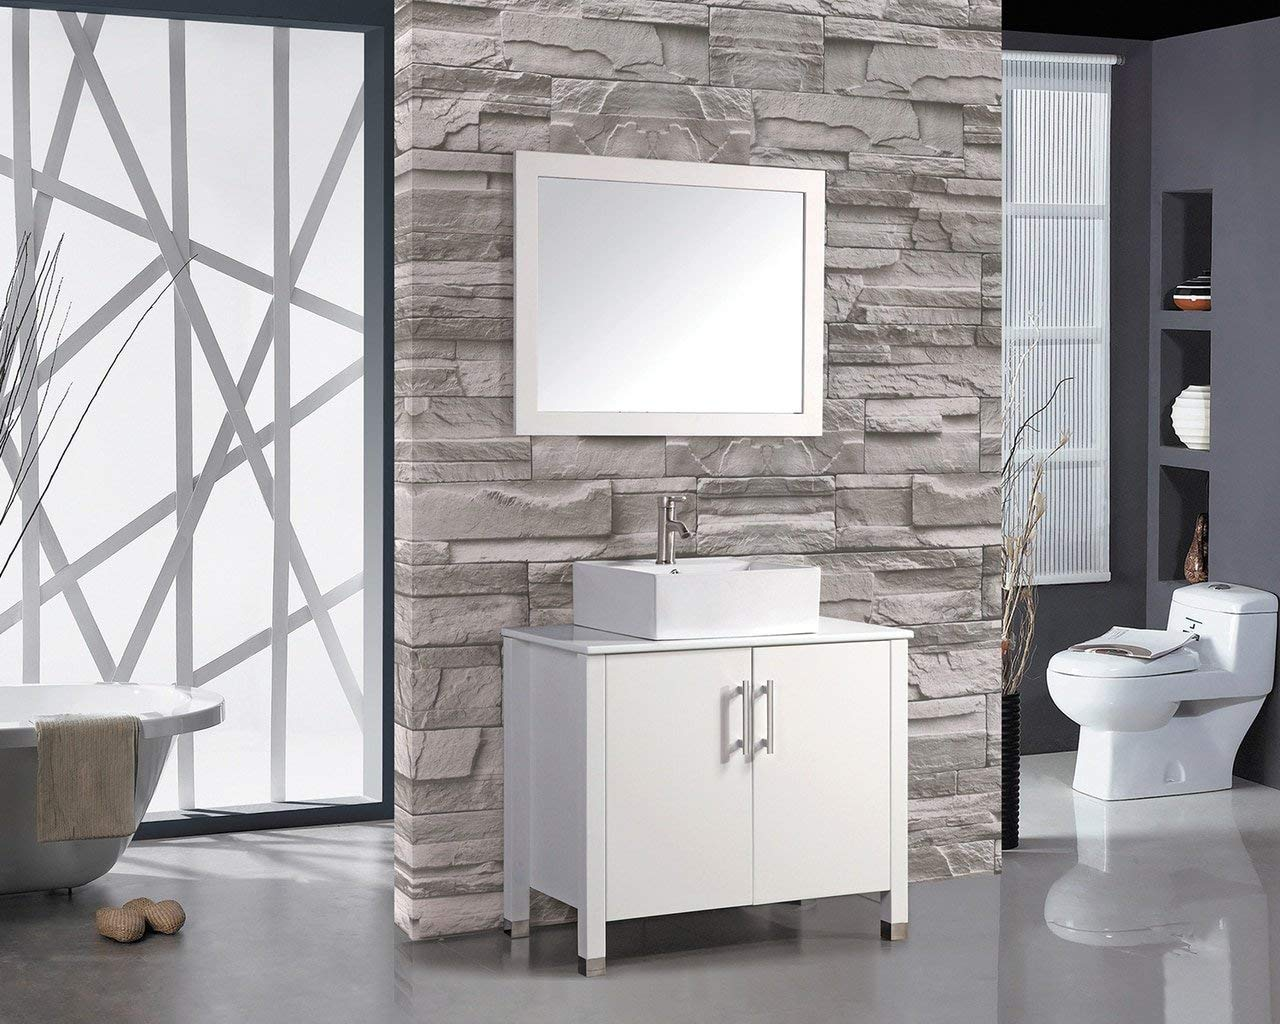 cheap 36 inch bathroom vanities find 36 inch bathroom vanities rh guide alibaba com 36 inch bathroom vanities clearance 36 inch bathroom vanities near me